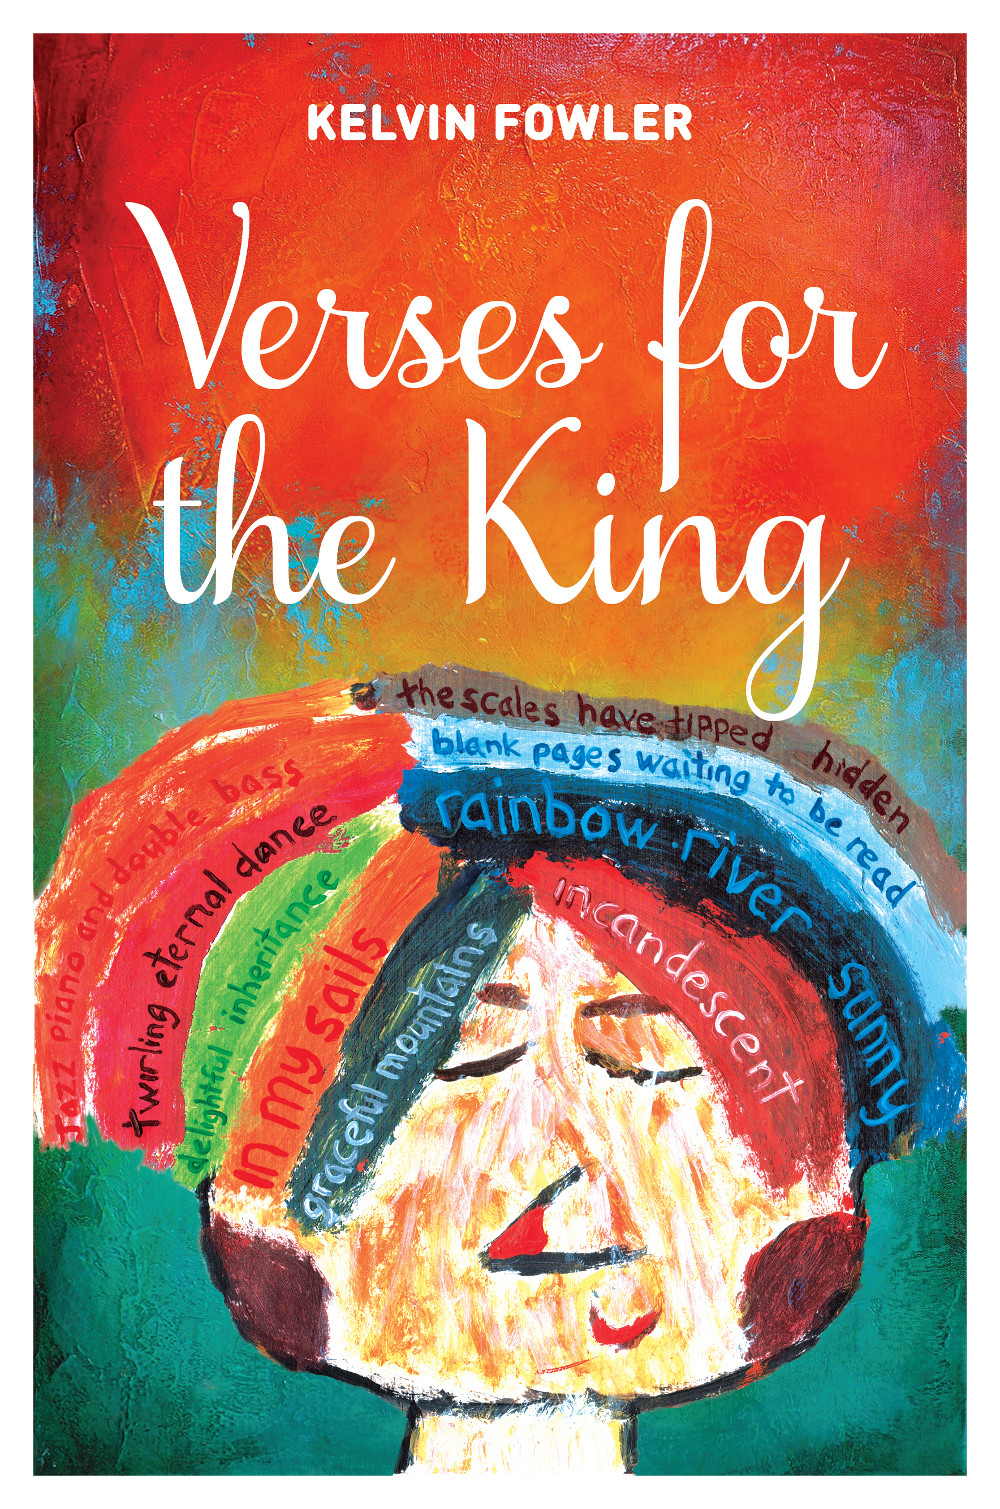 Verses for the King